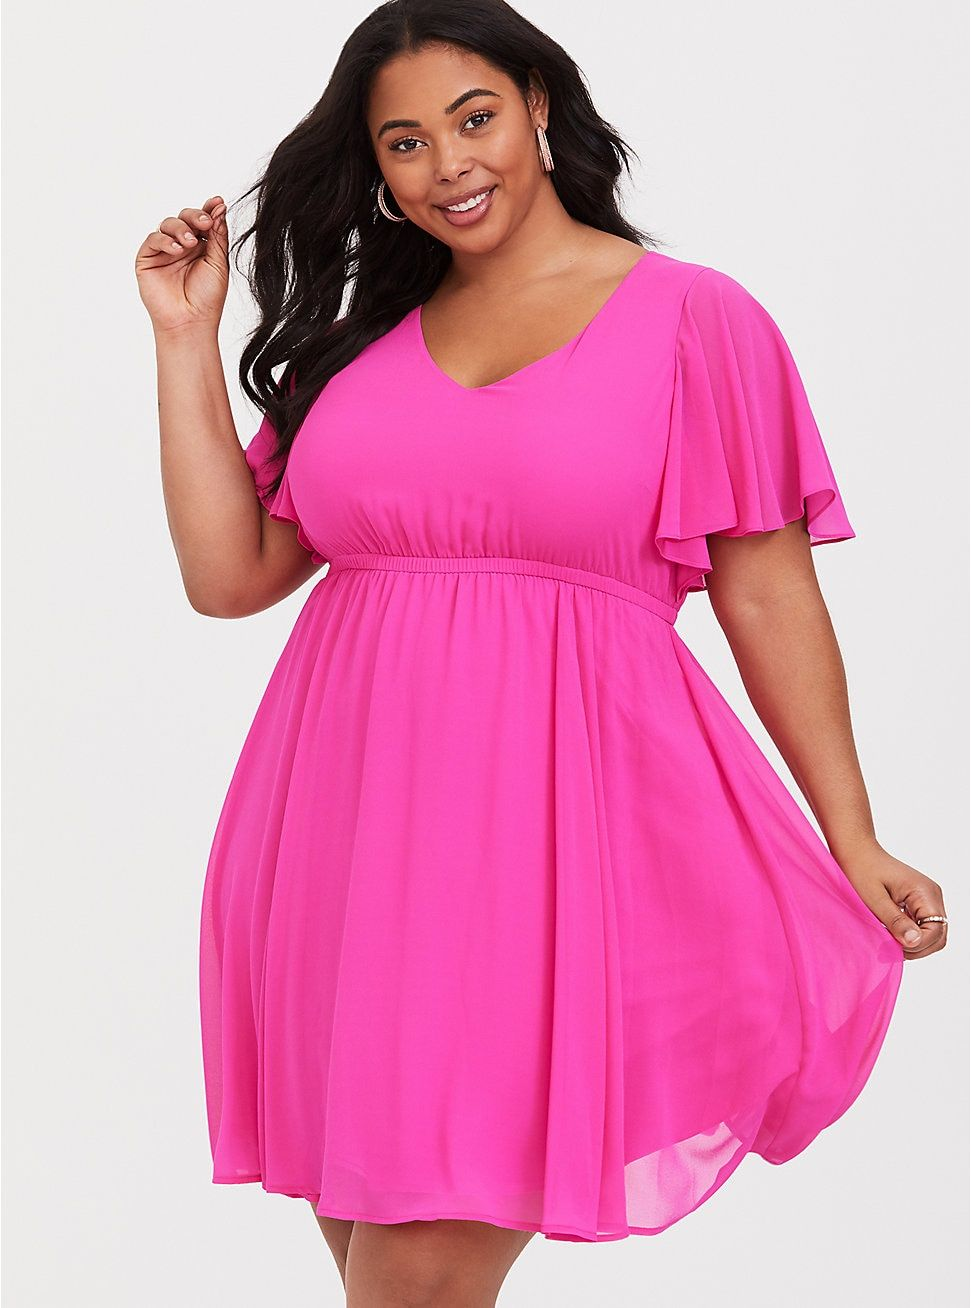 Hot Pink Flutter Chiffon Skater Dress | My Style in 2019 ...